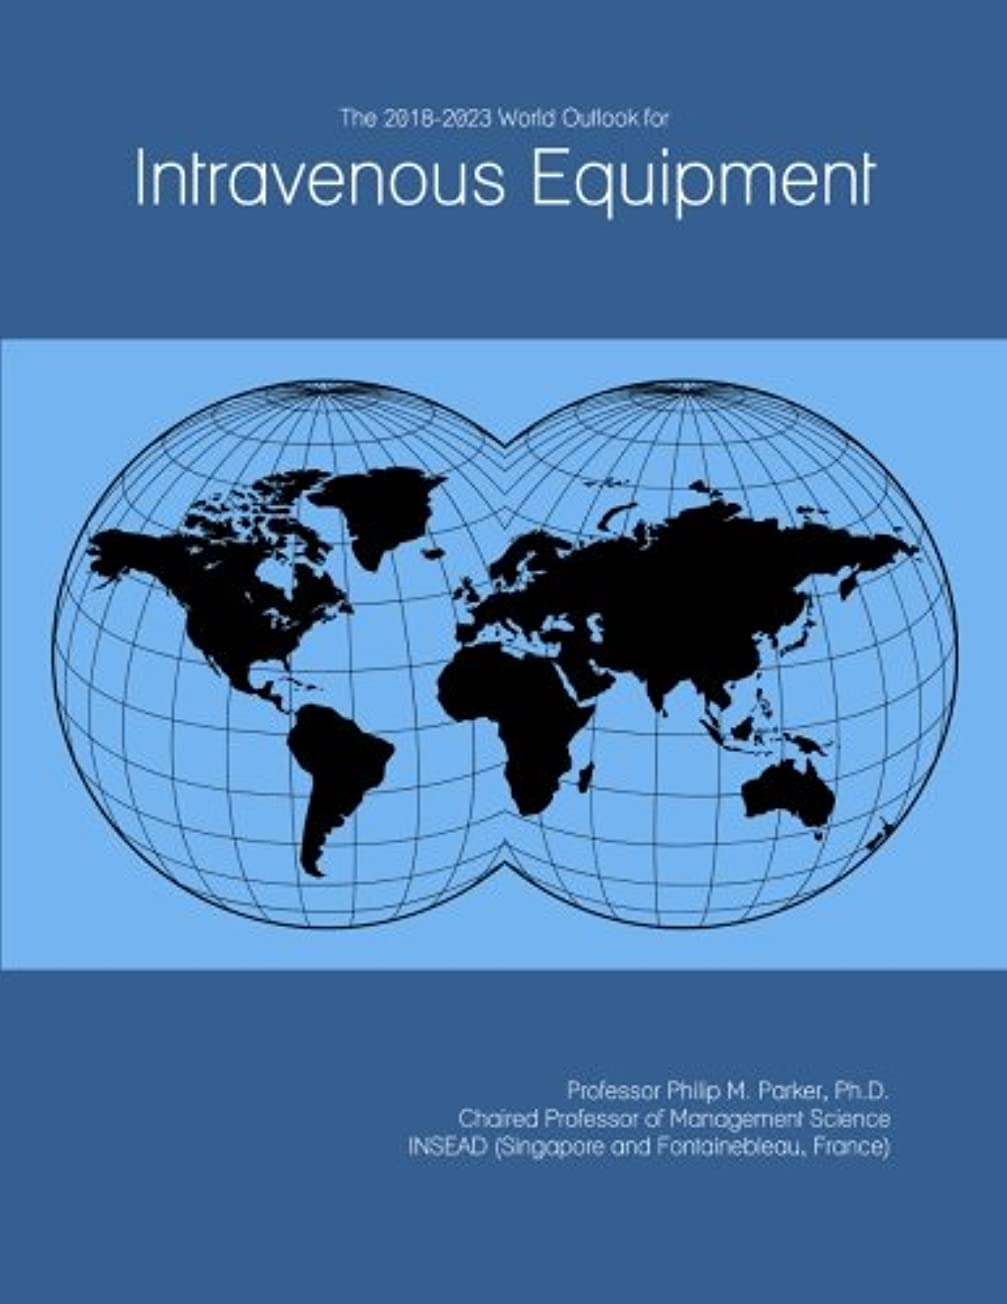 The 2018-2023 World Outlook for Intravenous Equipment